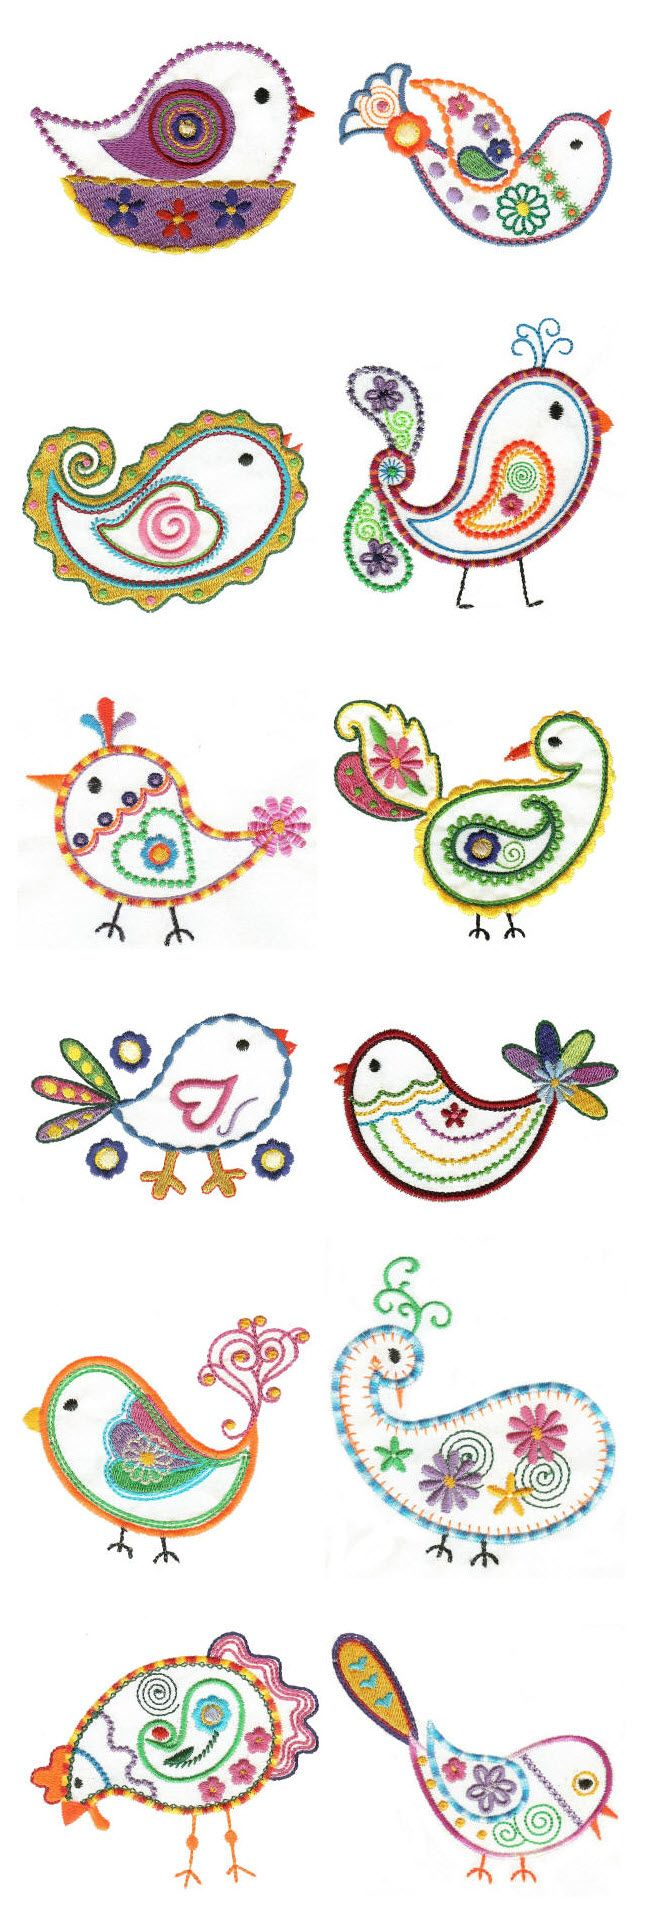 Cute embroidered birdies.